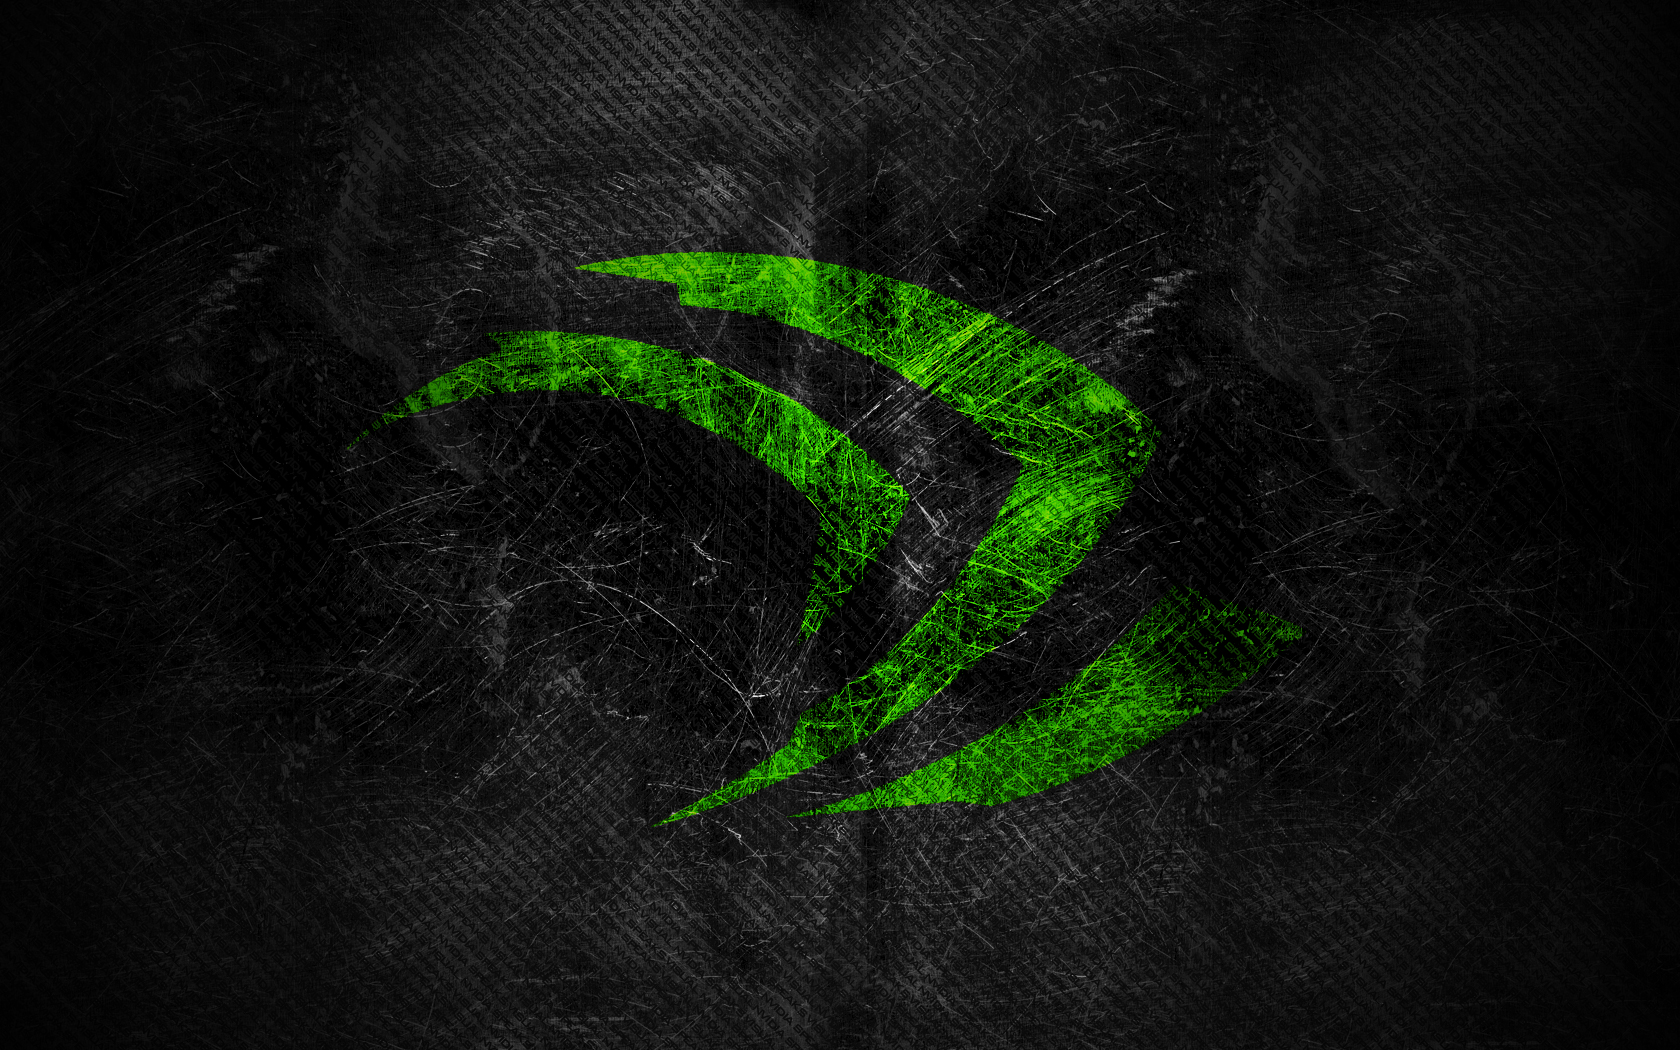 nvidia_claw_wallpaper_by_thorgaris